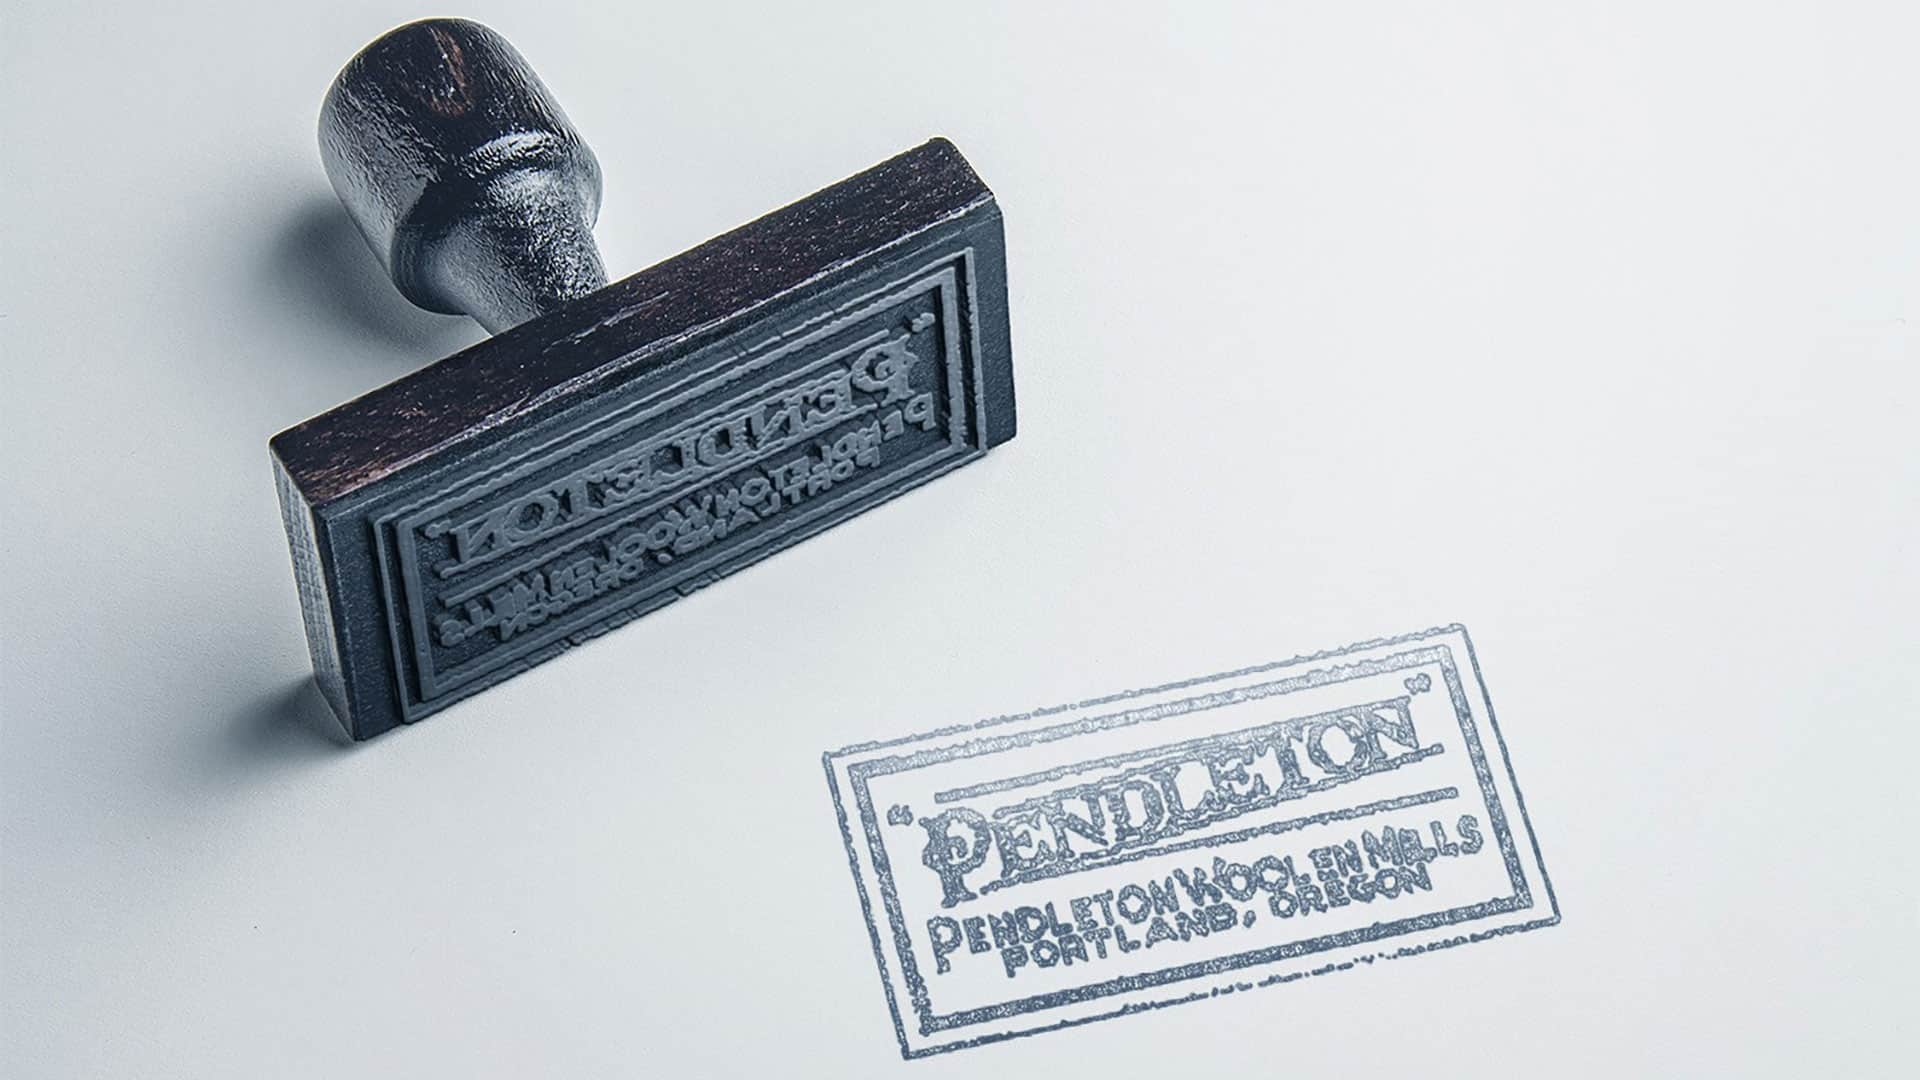 Matthew Partida Jenny Truong John Francis Murillo Advertising Rubber Stamp